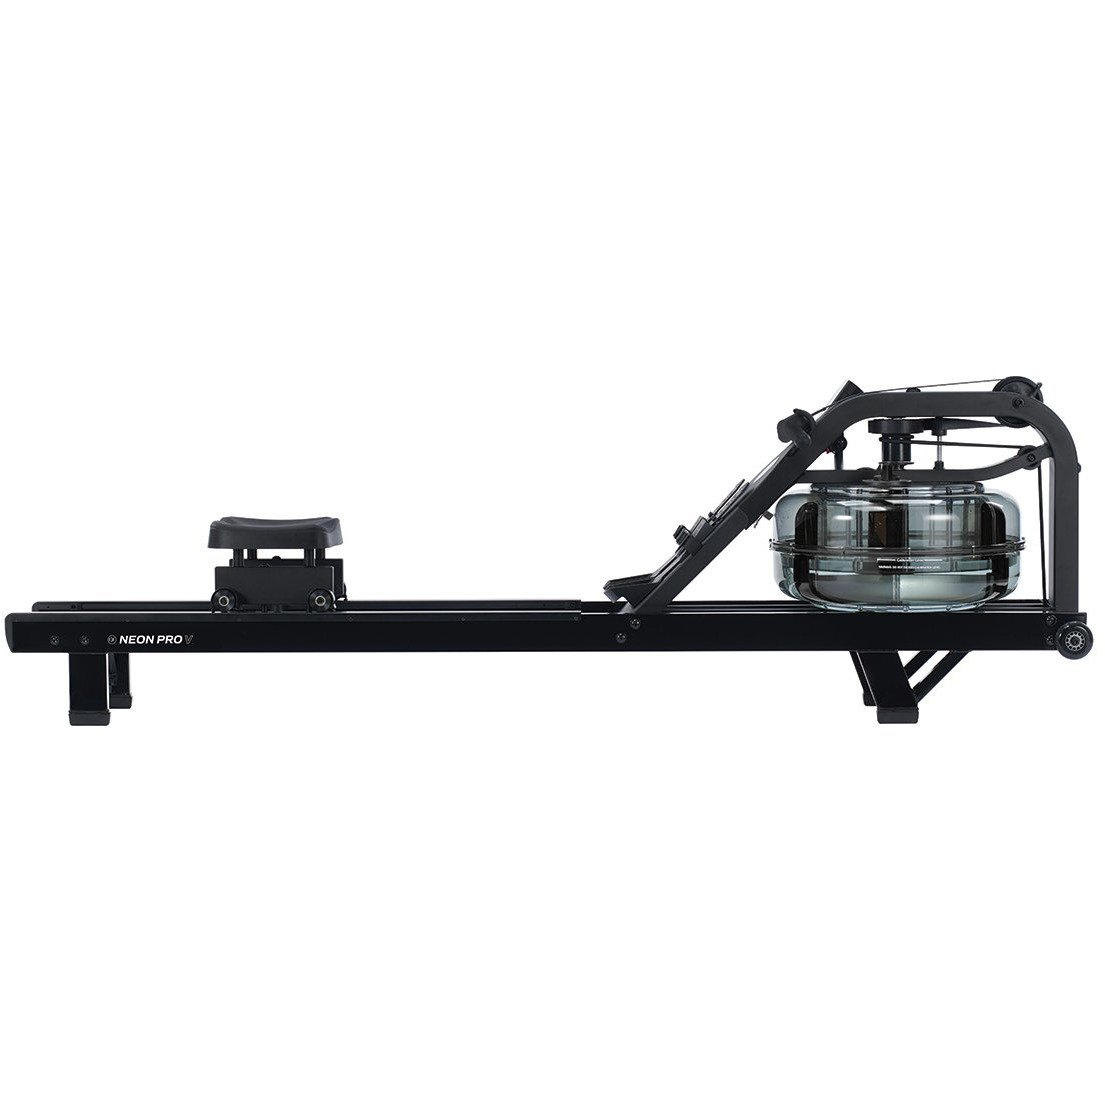 First Degree Fitness Neon Pro V Horizontal Series Indoor Fluid Rower EVBP